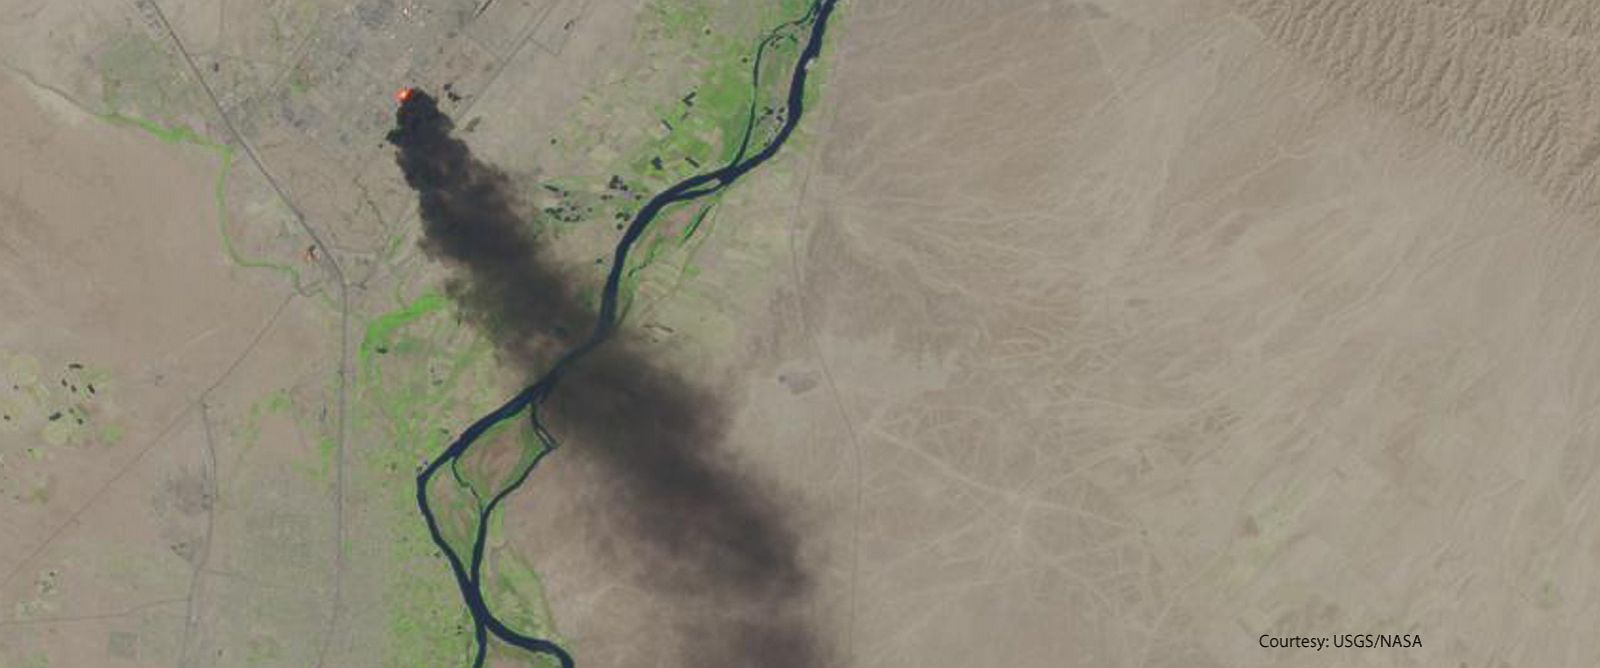 PHOTO: This photo from the U.S. Geological Survey and NASA shows a satellite view of smoke billowing from the Baiji North refinery complex on June 18, 2014 in Baiji, about 130 miles north of Baghdad, Iraq.